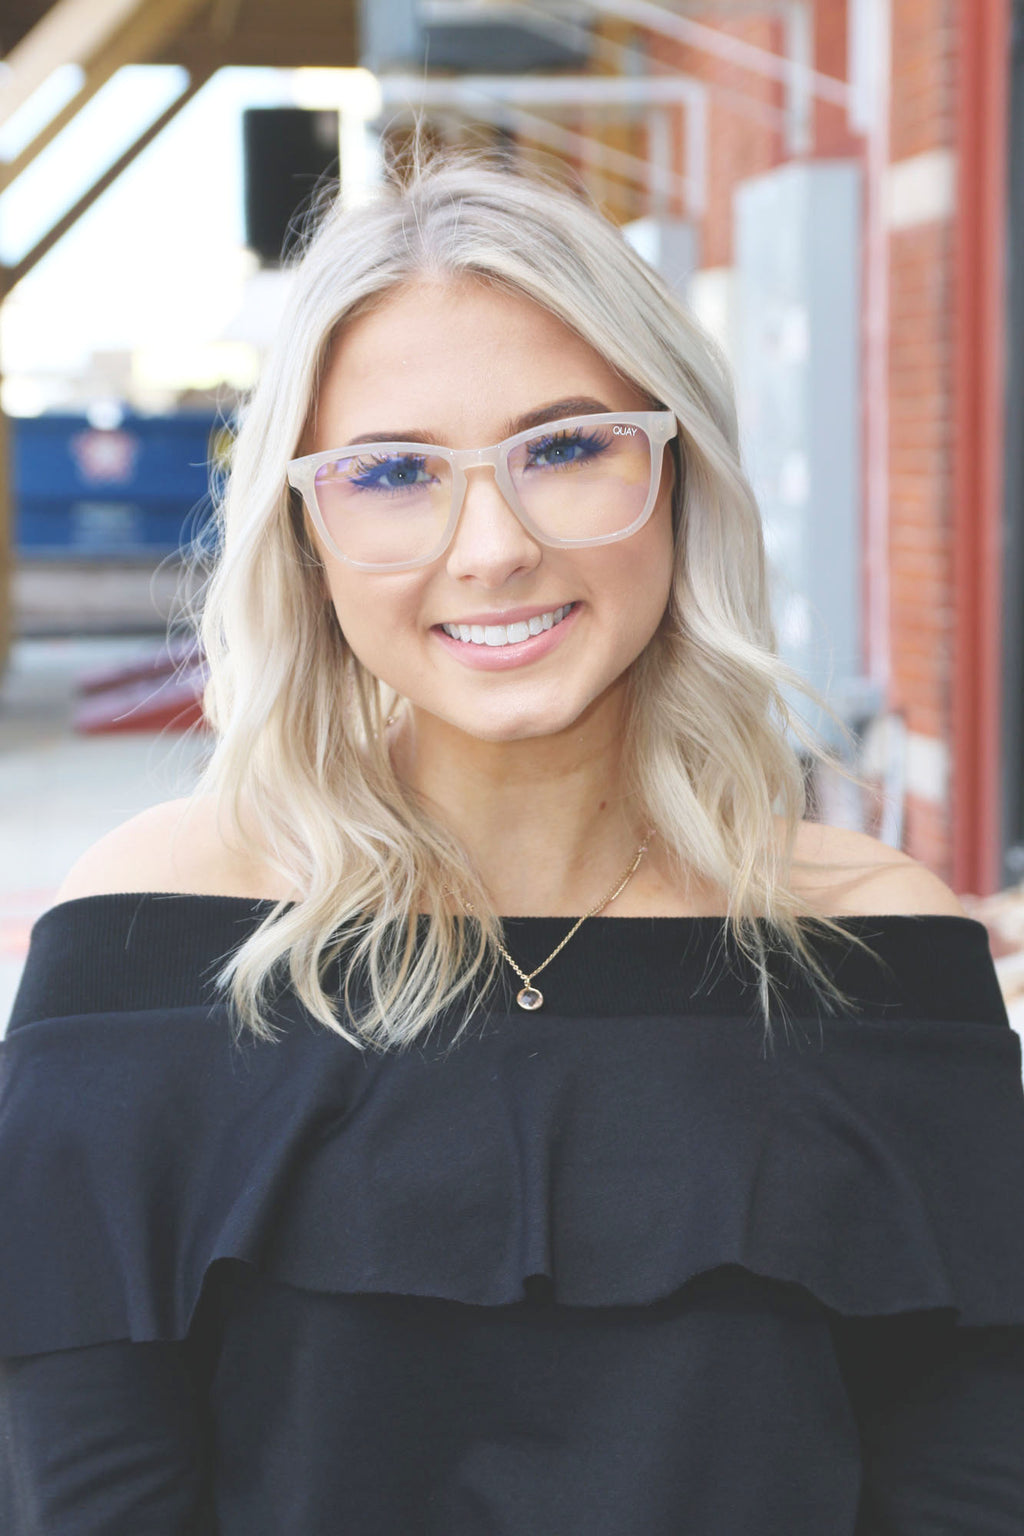 Hardwire Blue Light Glasses - Quay - Yellow Kiss Boutique